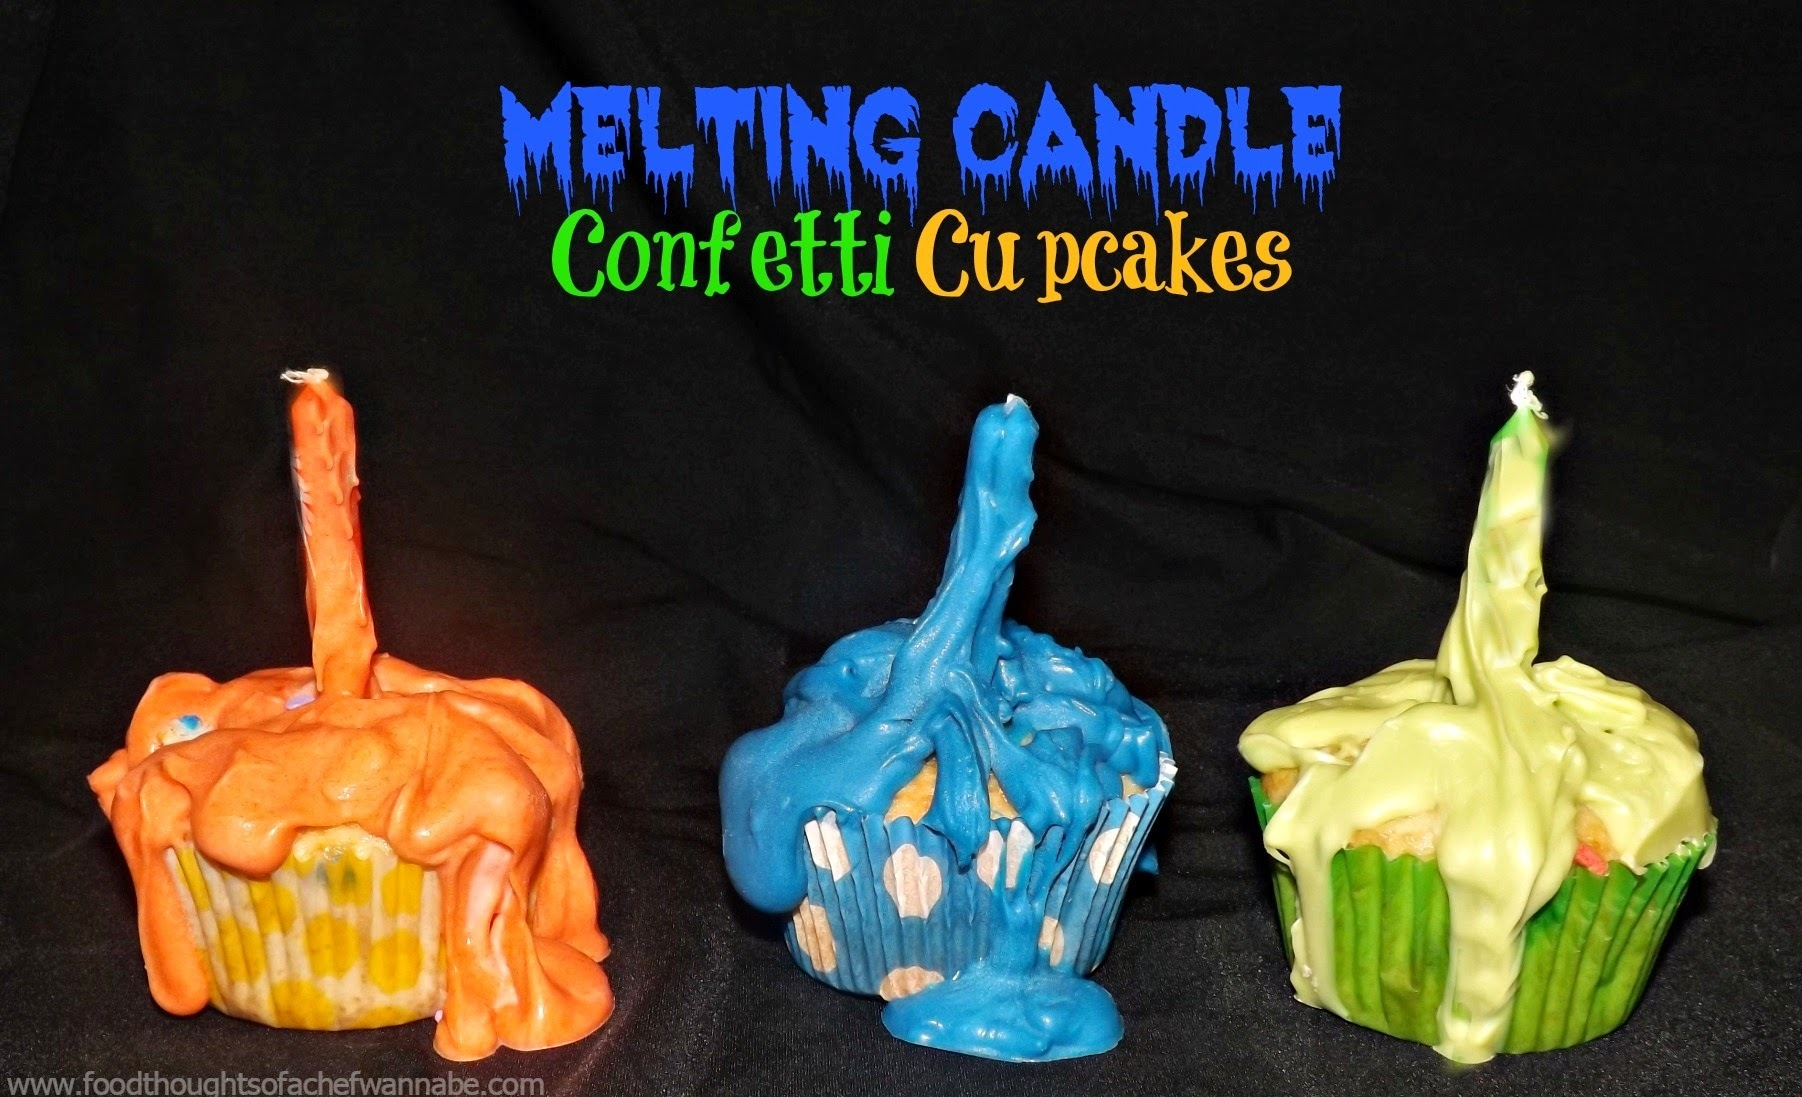 Melting Candle Confetti Cupcakes!